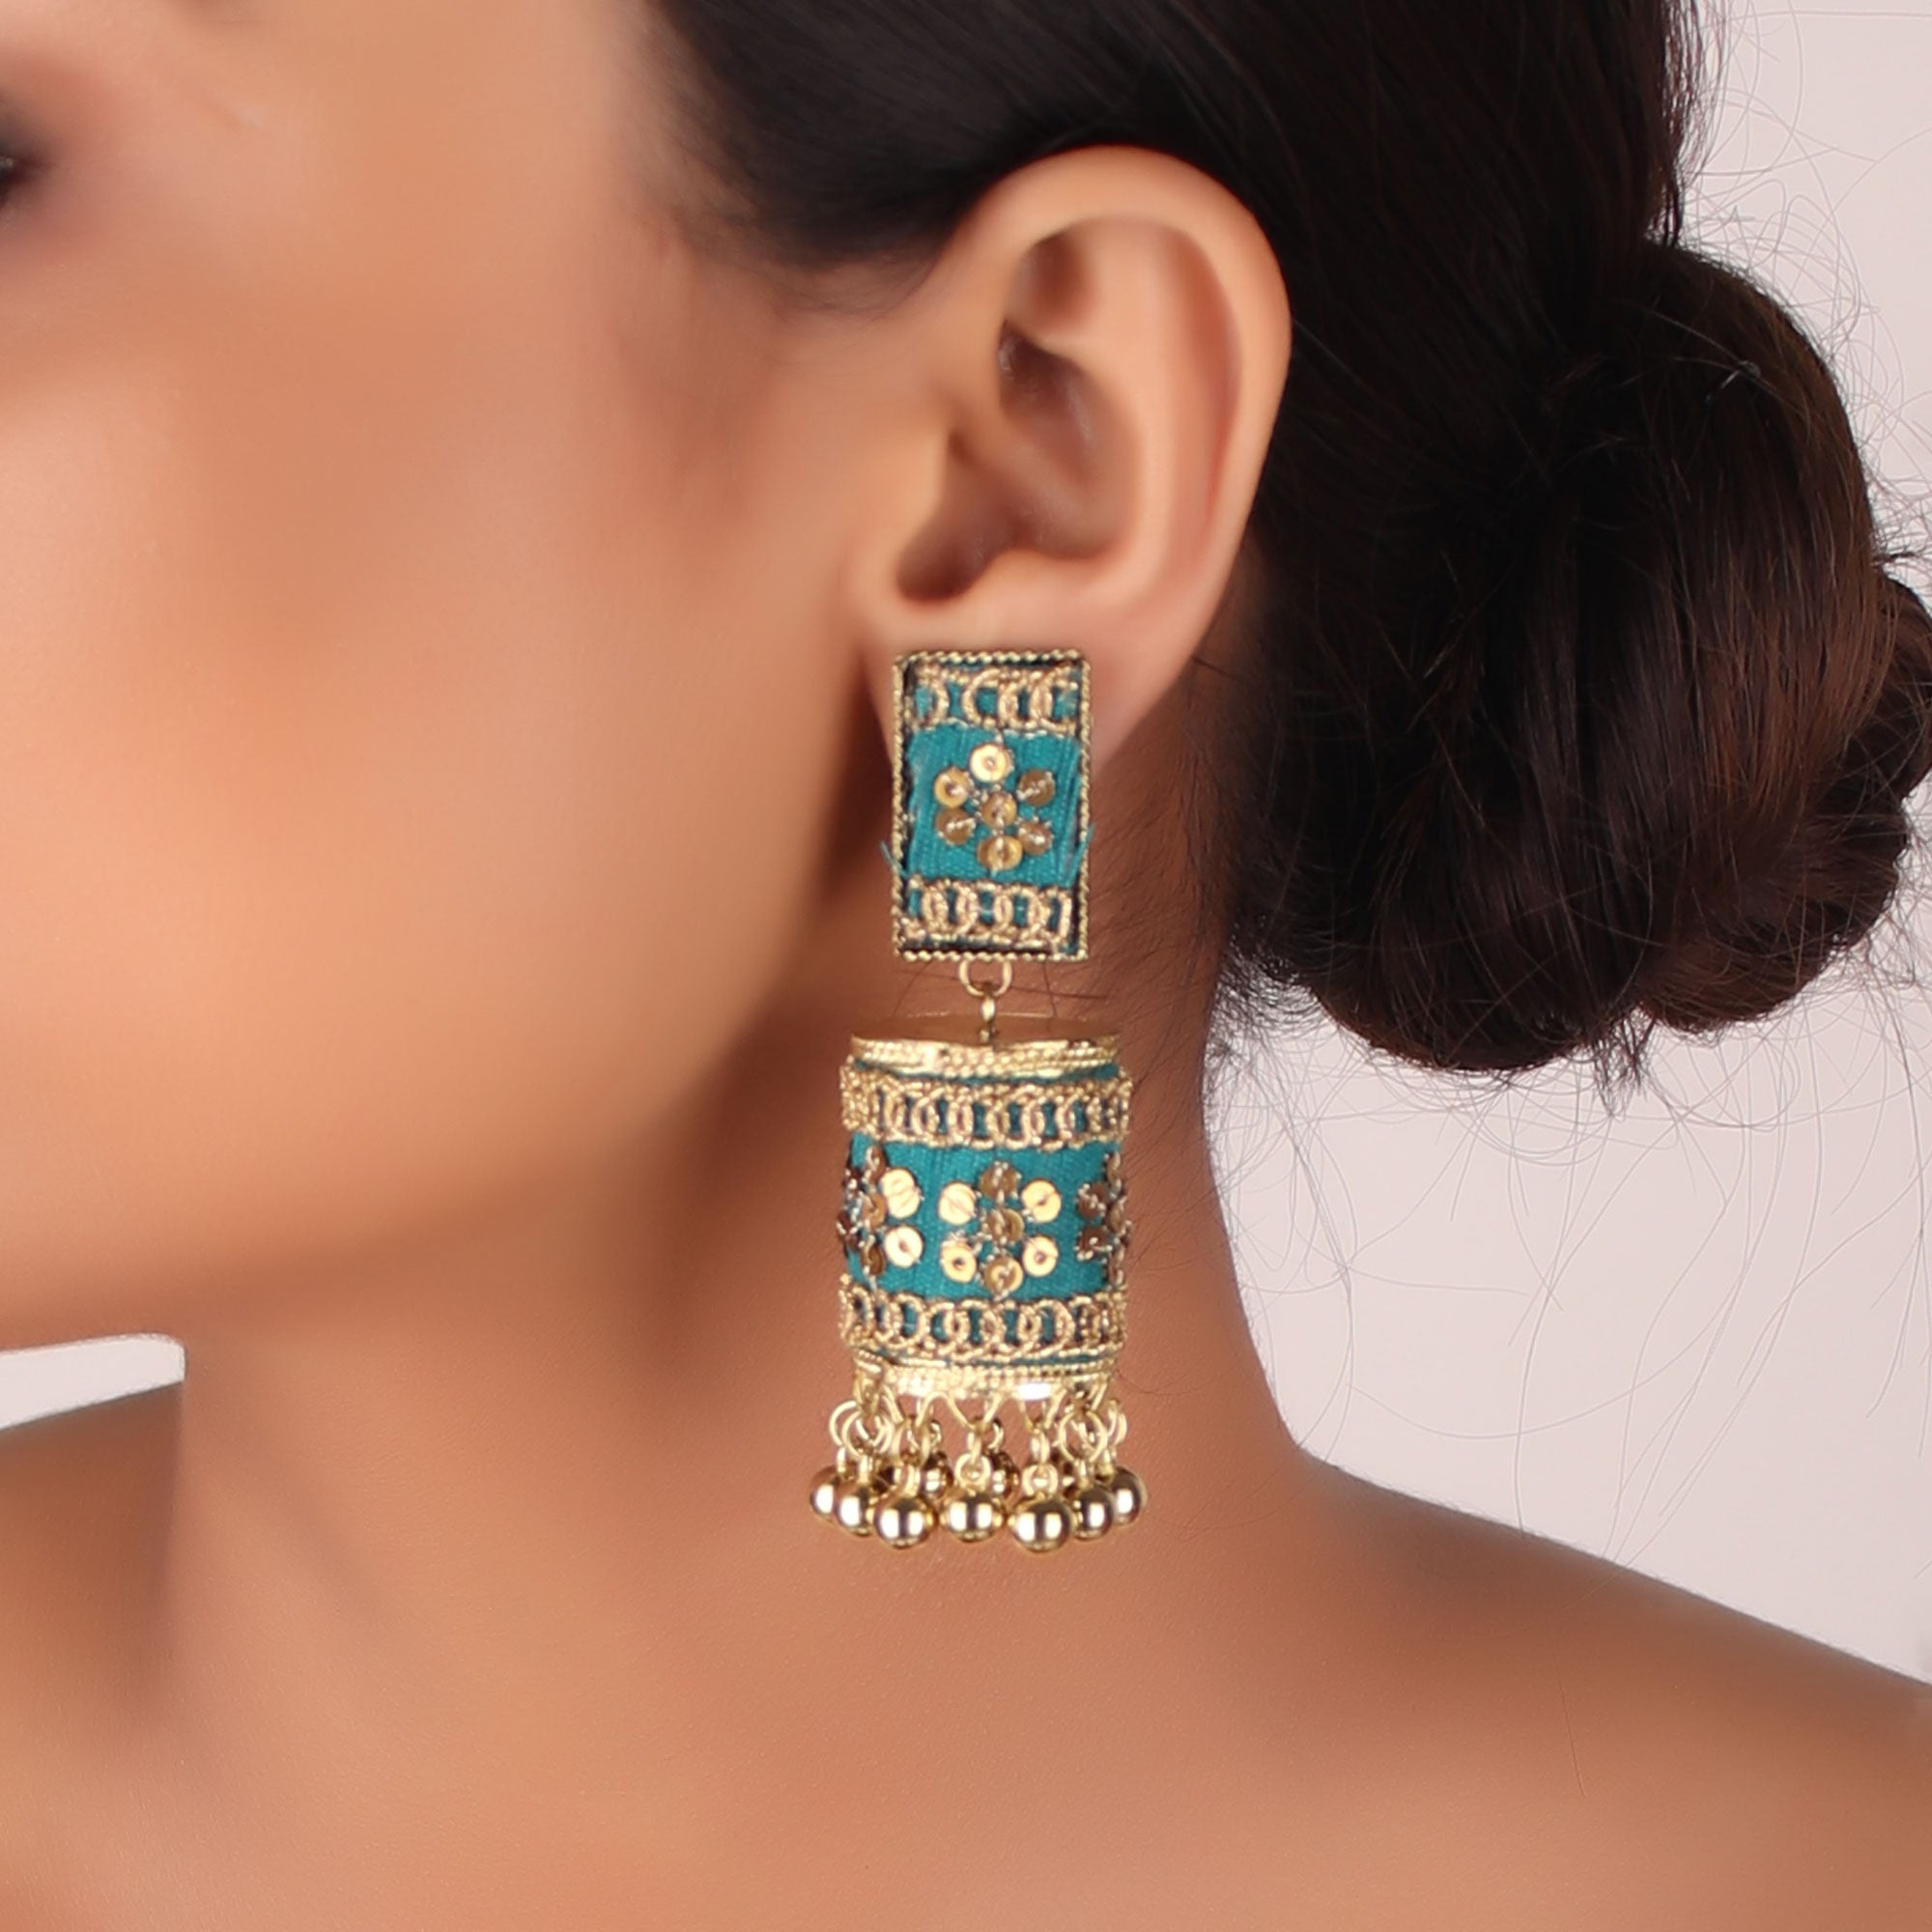 Earrings,The Nizam's Chumki Jhoomar Earring in Green - Cippele Multi Store